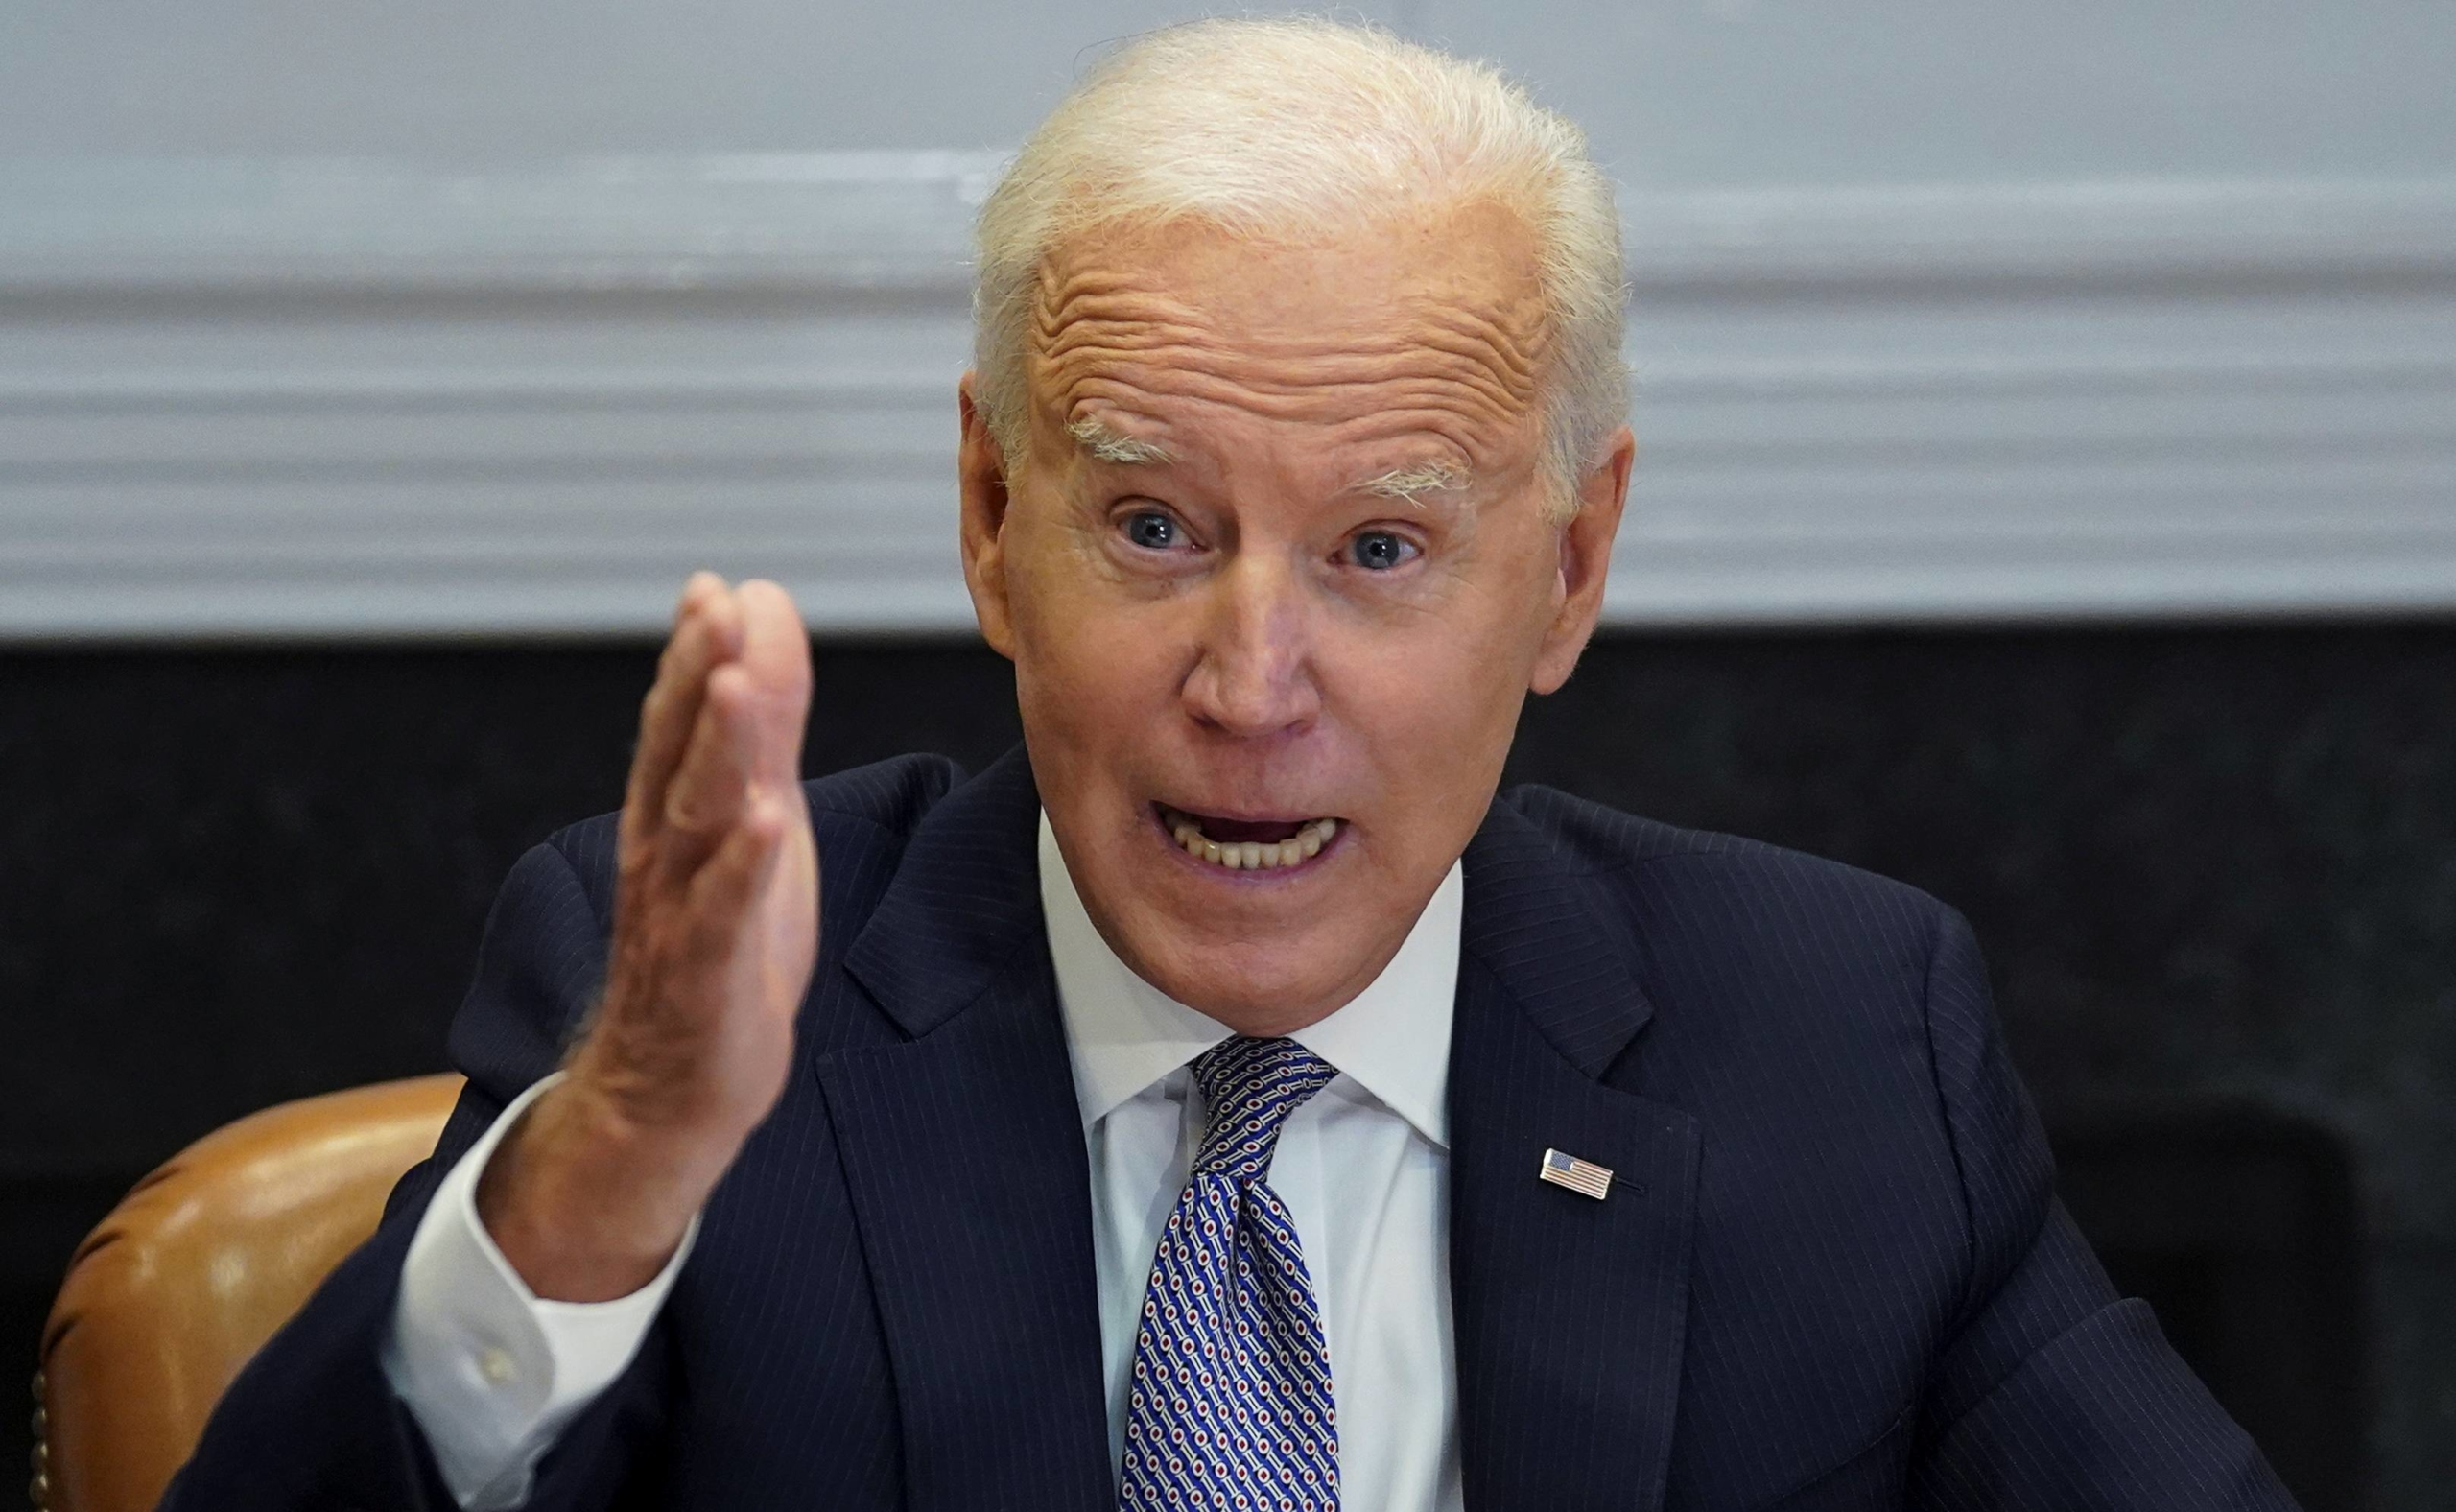 U.S. President Joe Biden participates in a virtual summit on the semiconductor supply chain from the White House in Washington on Monday. | REUTERS